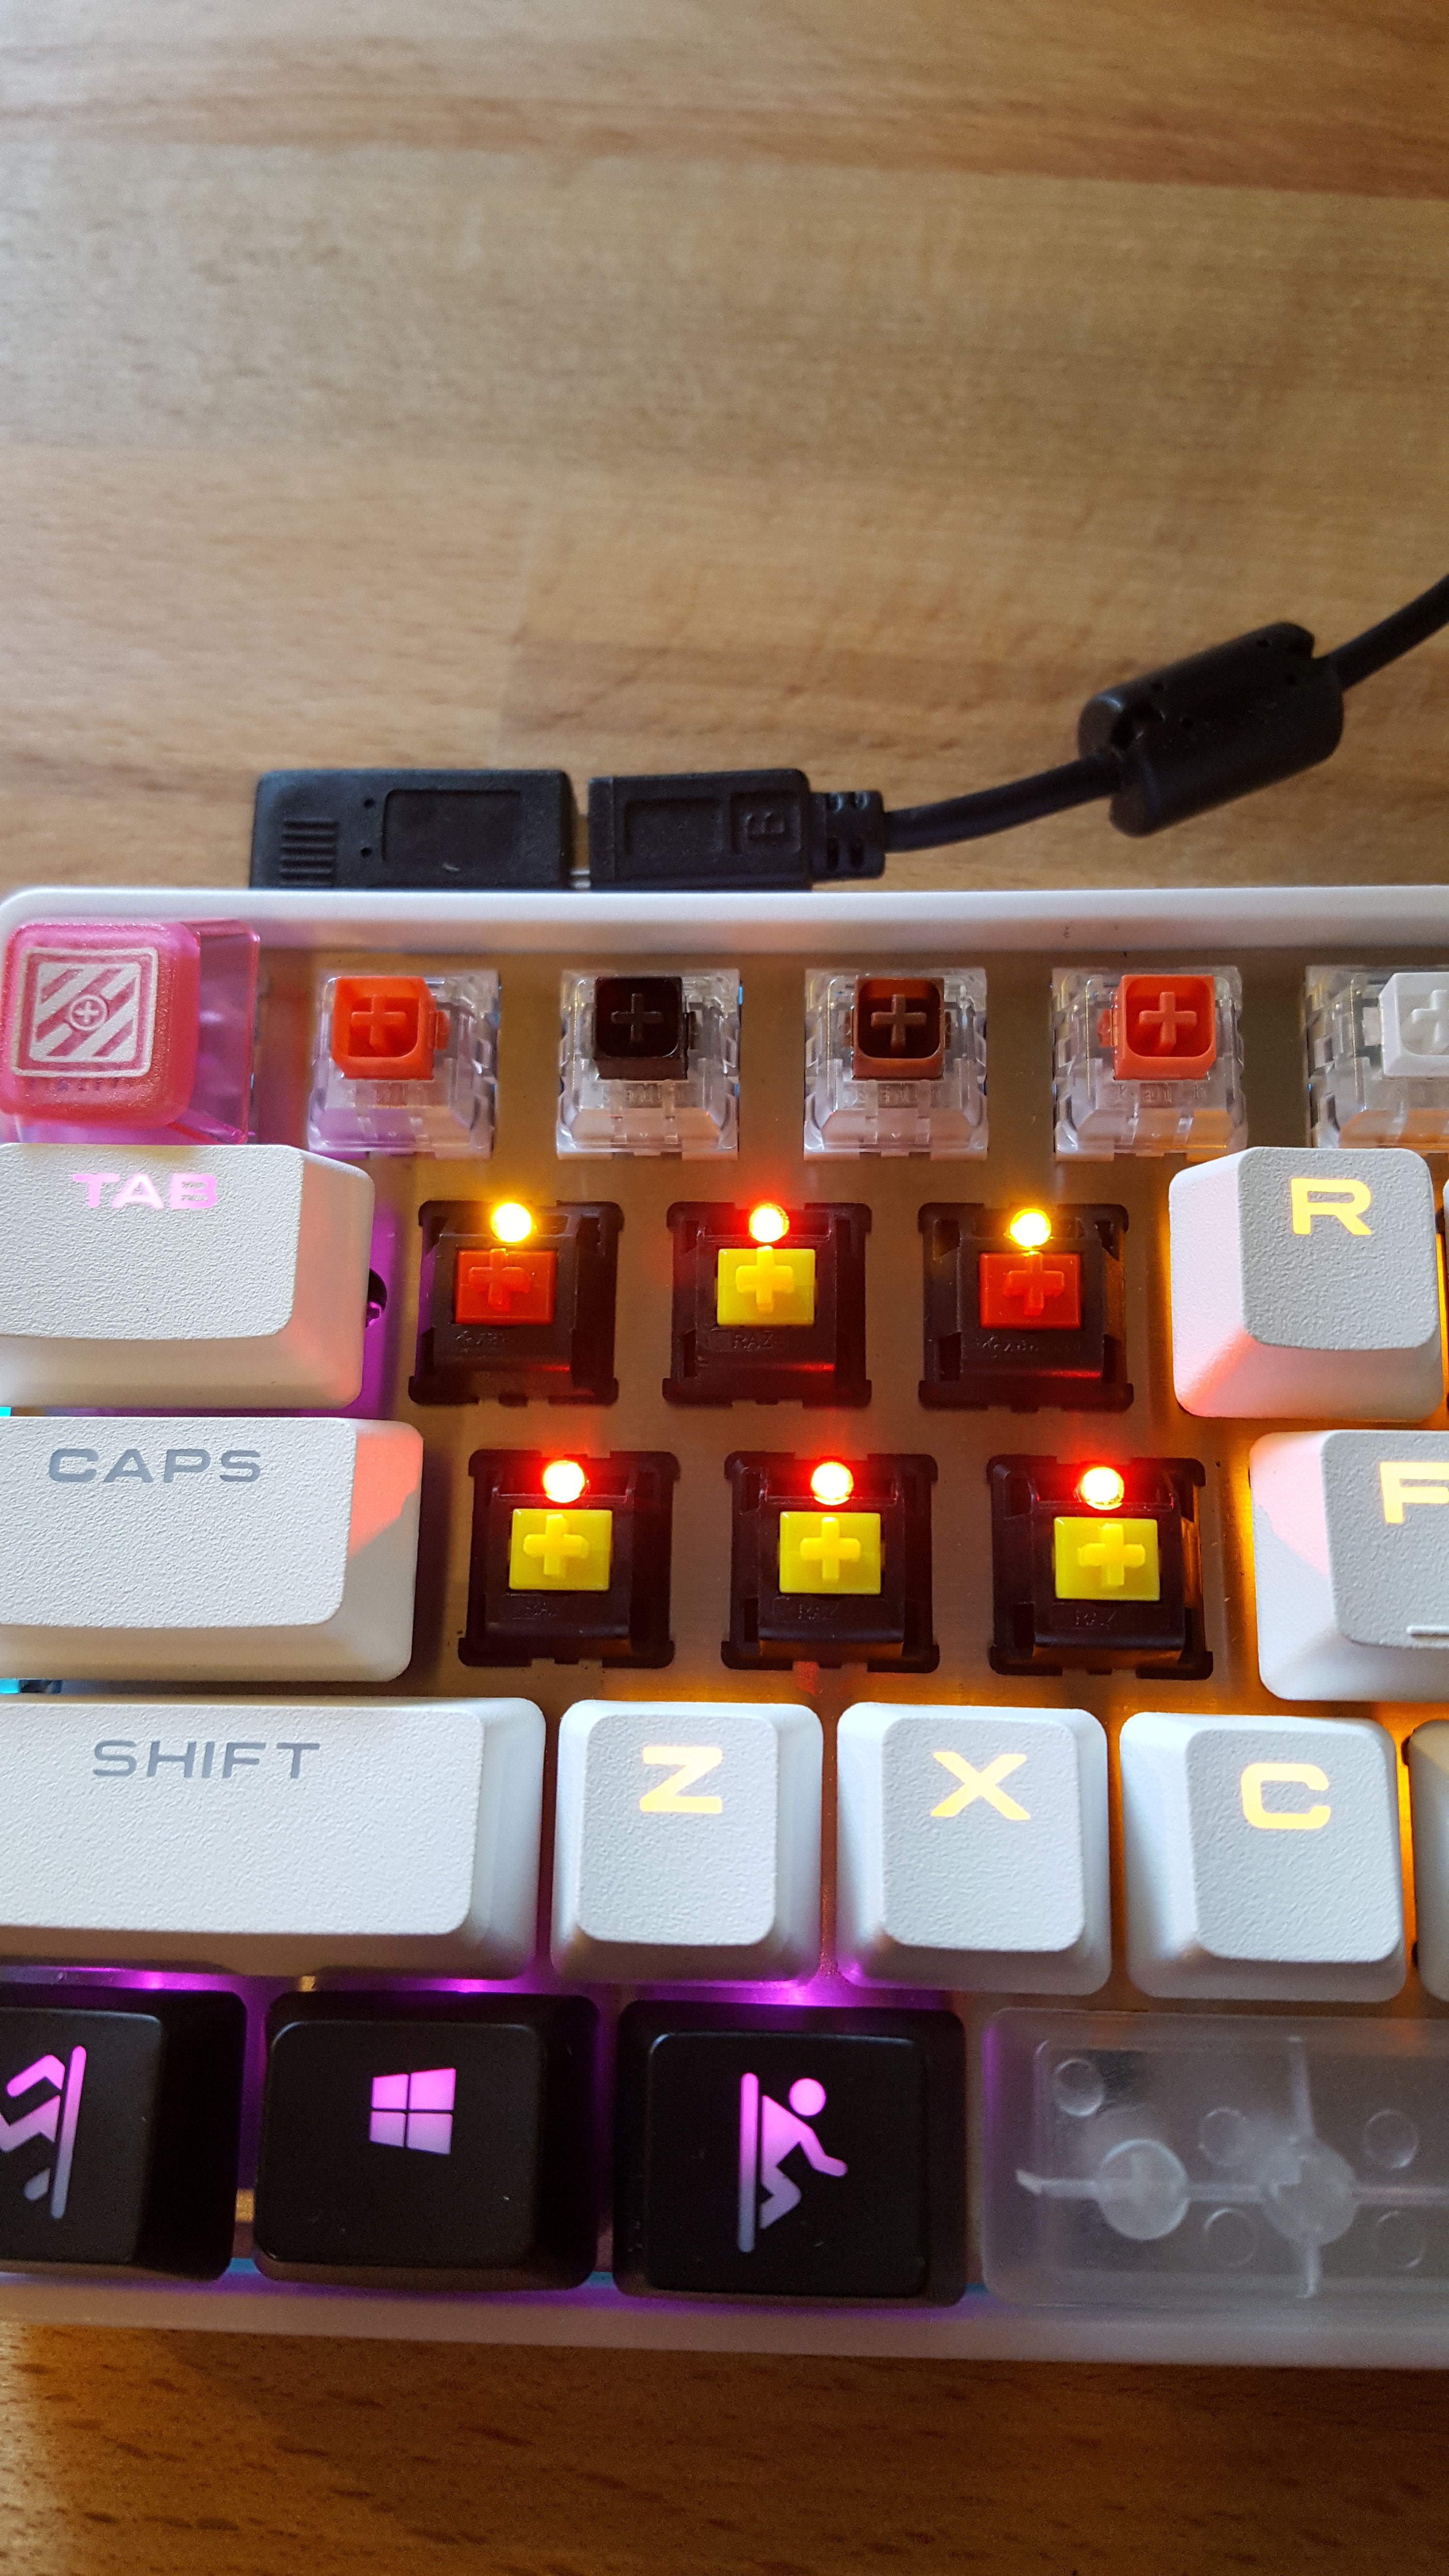 Hot swappable mechanical keyboard *by MeckeyAlpha